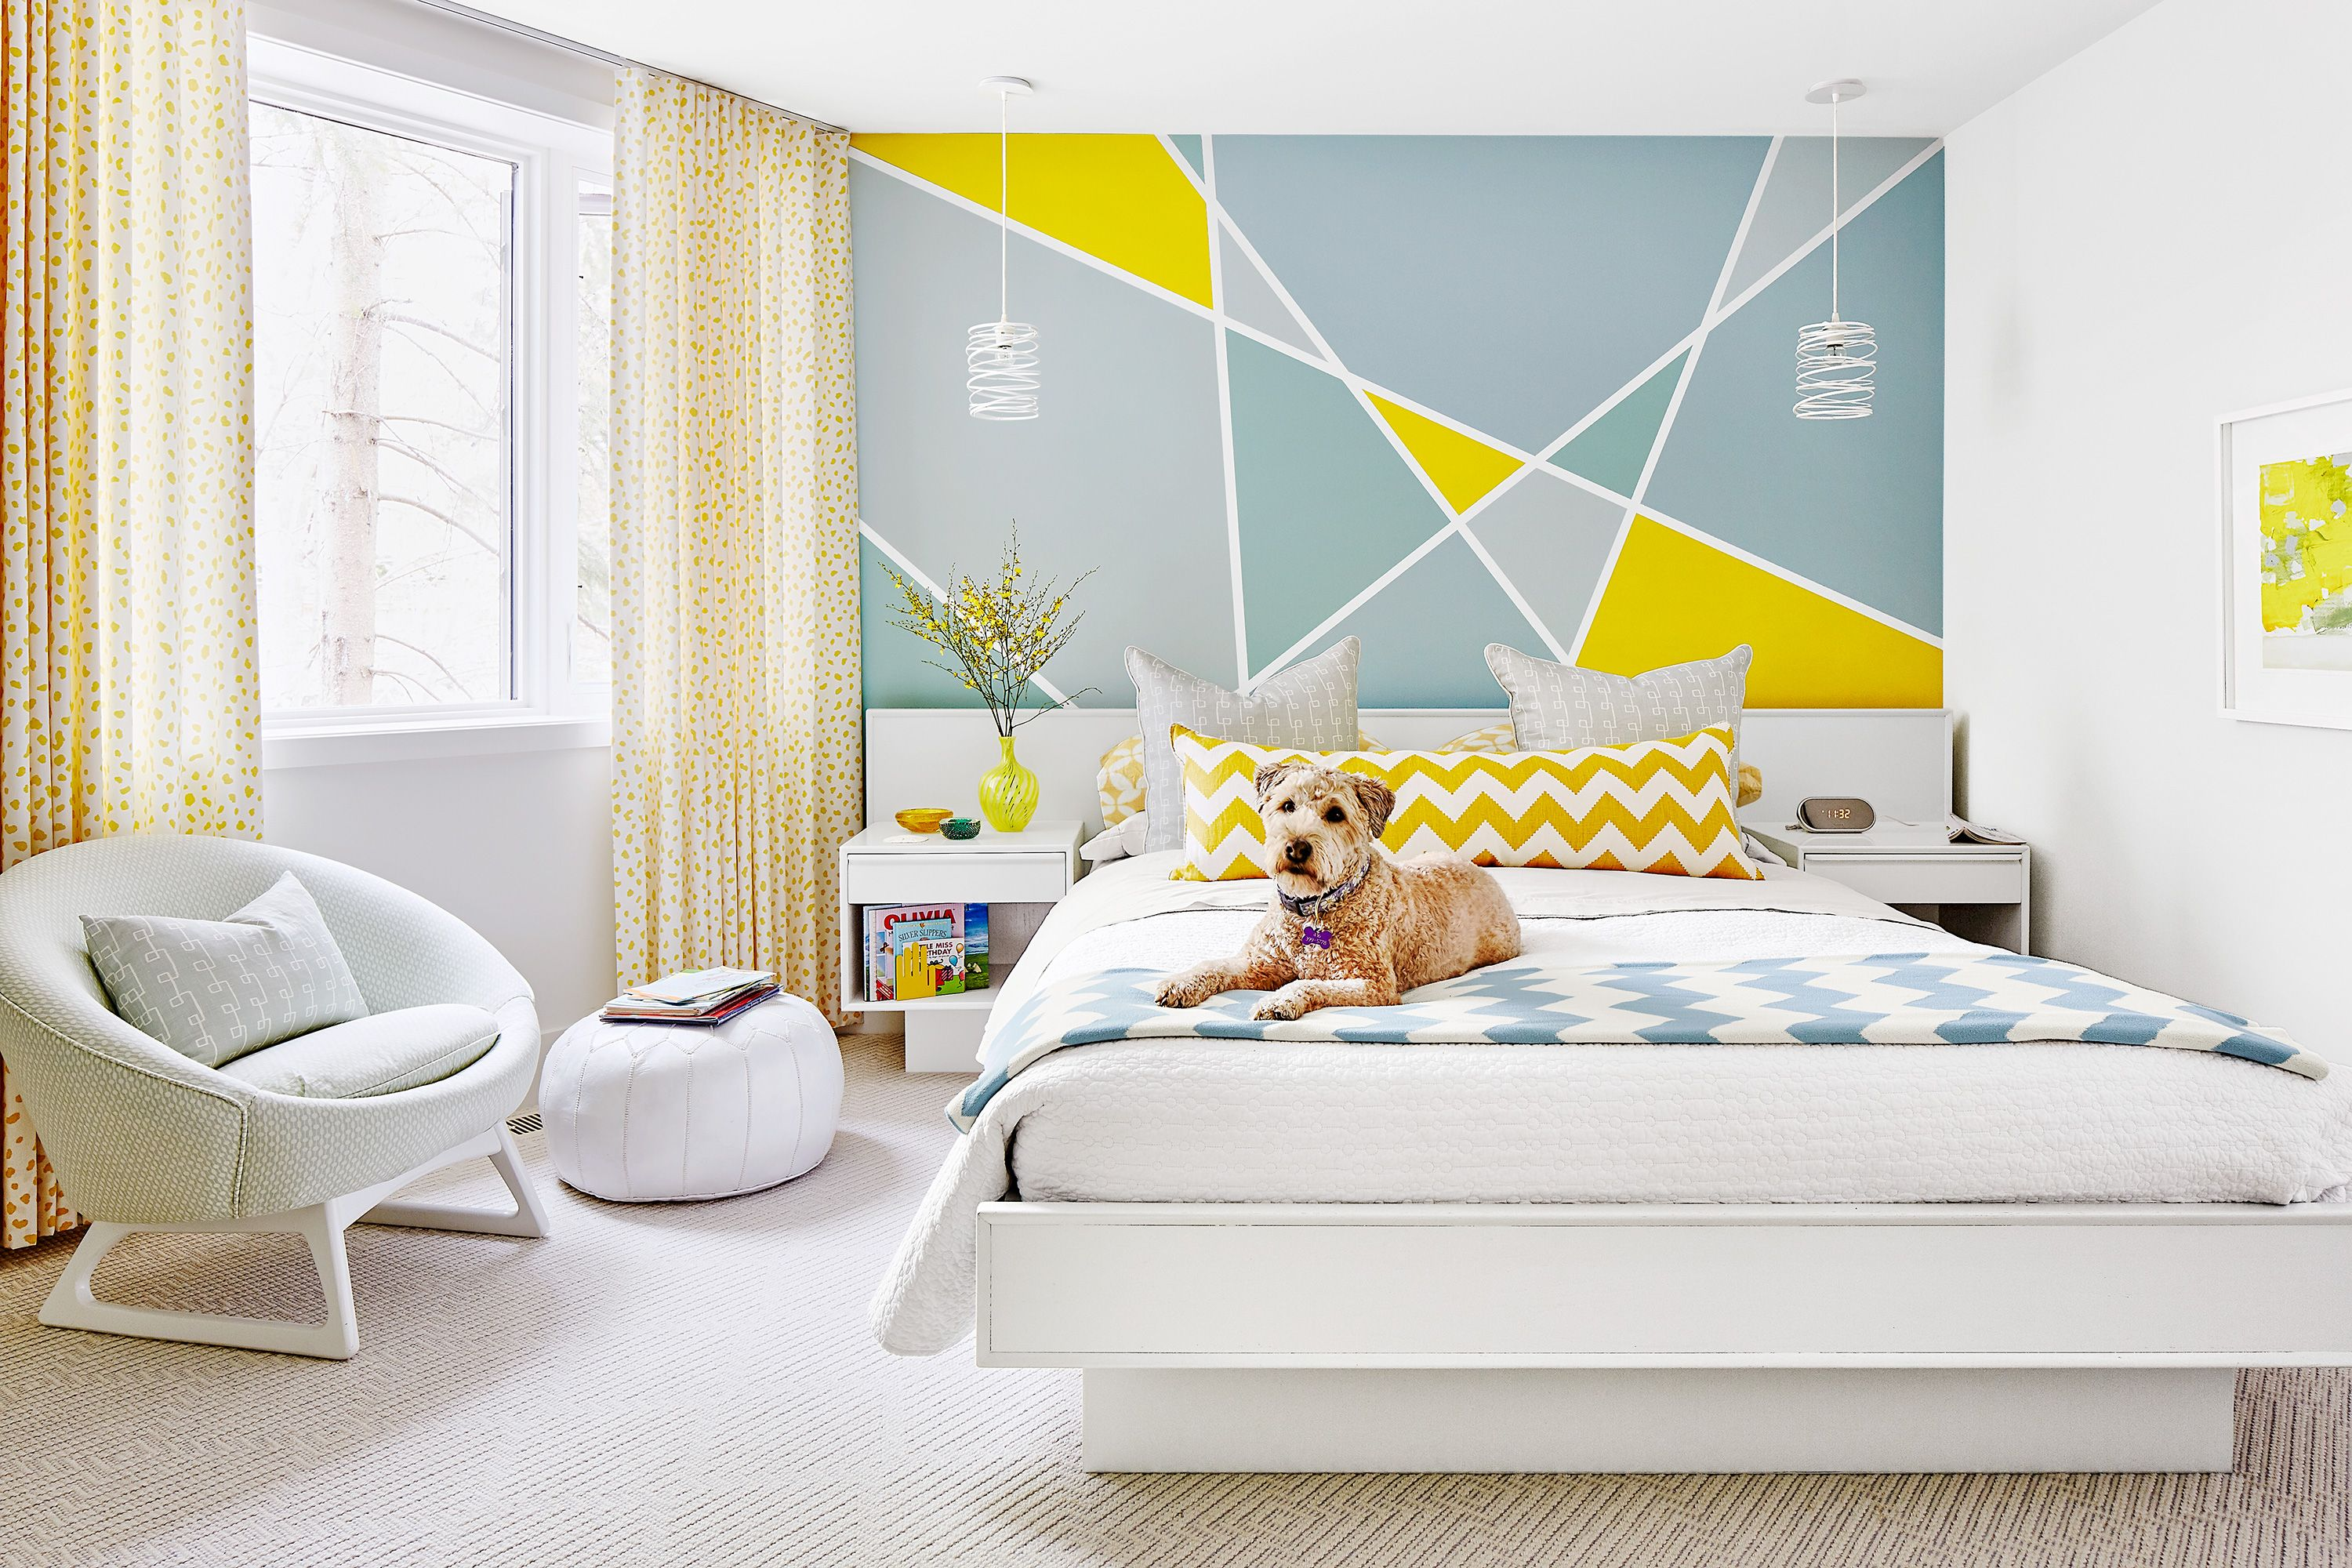 Paint A Simple Geometric Pattern On Your Bedroom Wall Bedroom Wall Wall Paint Designs Geometric Wall Paint